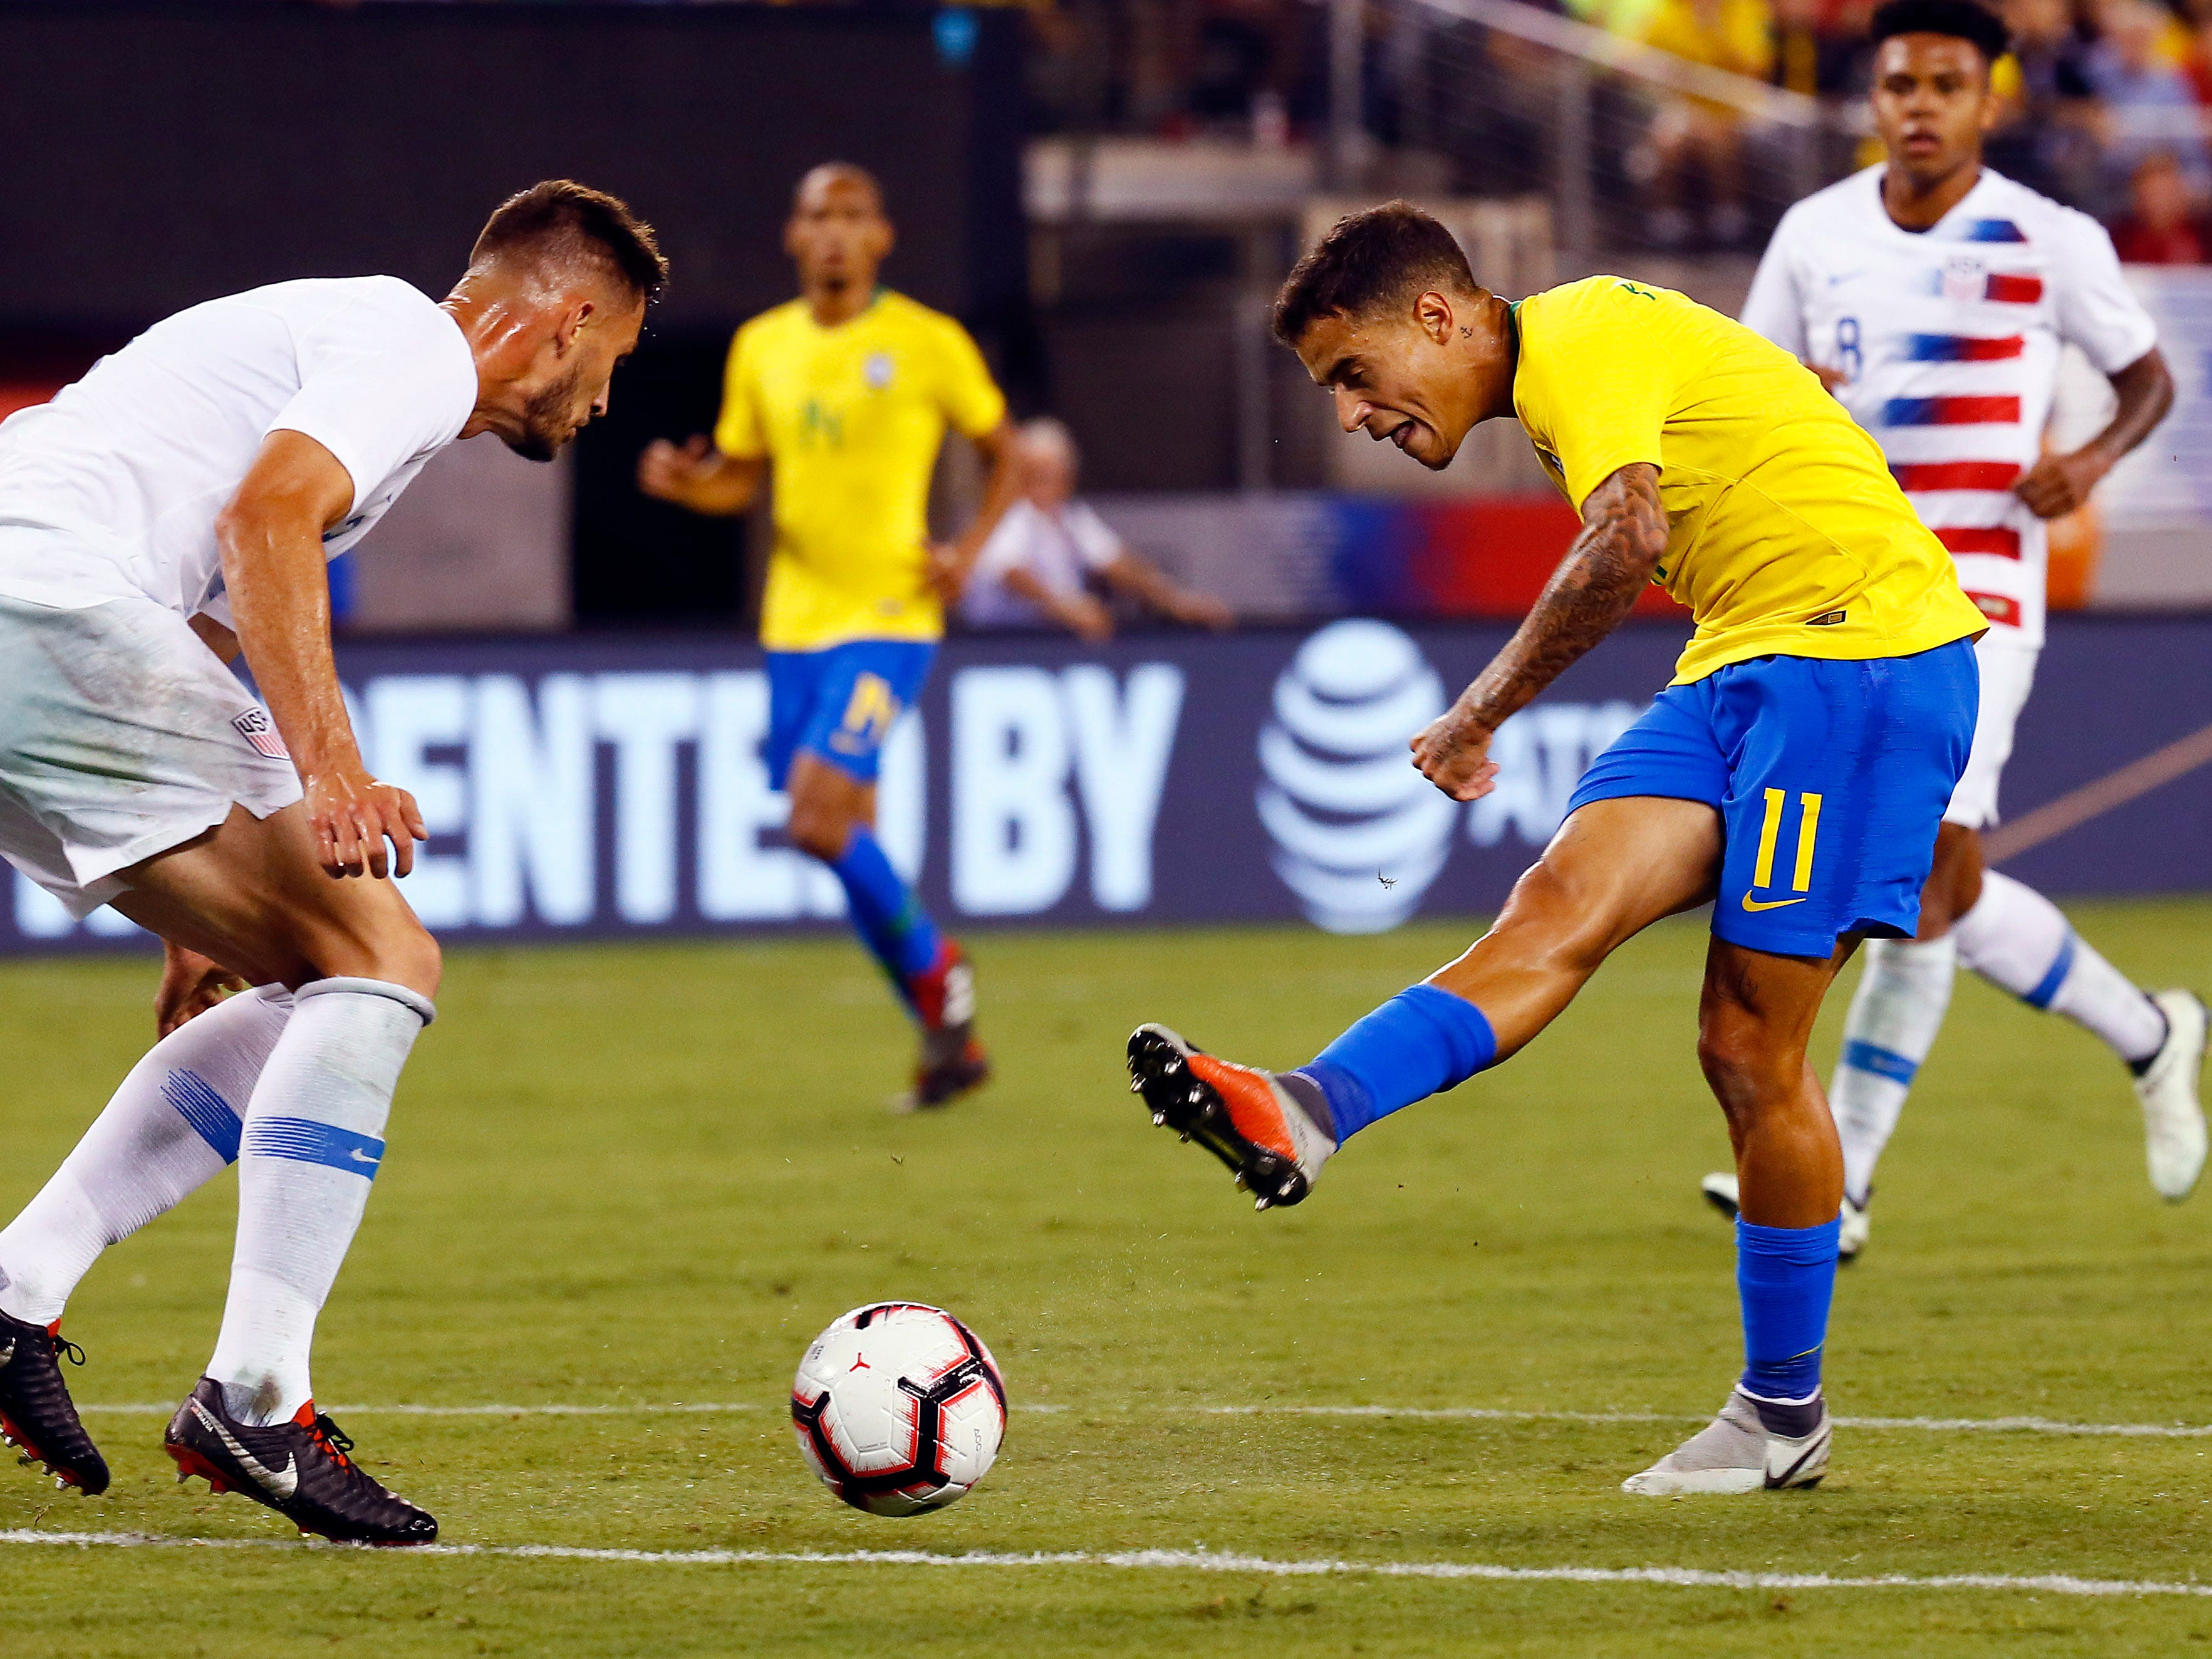 Brazil's Philippe Coutinho takes a shot on goal vs. the U.S. Men's National Team during their international friendly at MetLife Stadium in East Rutherford, N.J. The US was defeated 2-0 by the five-time World Cup champions. September 7, 2018, East Rutherford, NJ